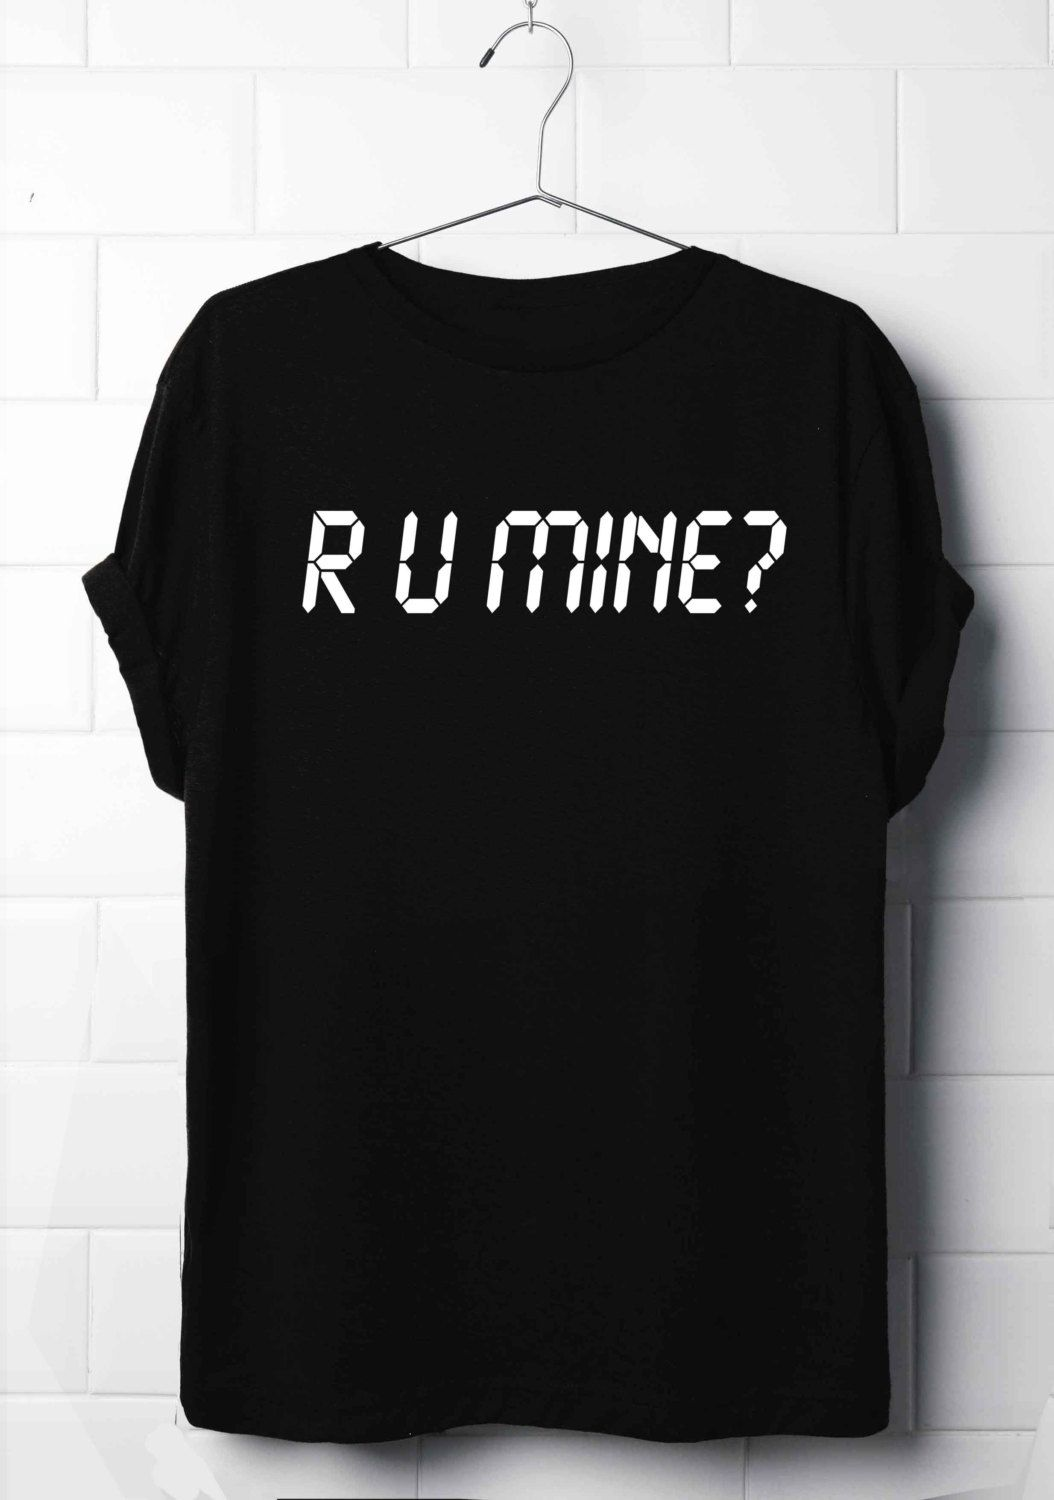 Black t shirt dress etsy - R U Mine T Shirt Arctic Monkeys T Shirt Lyrics T Shirt S